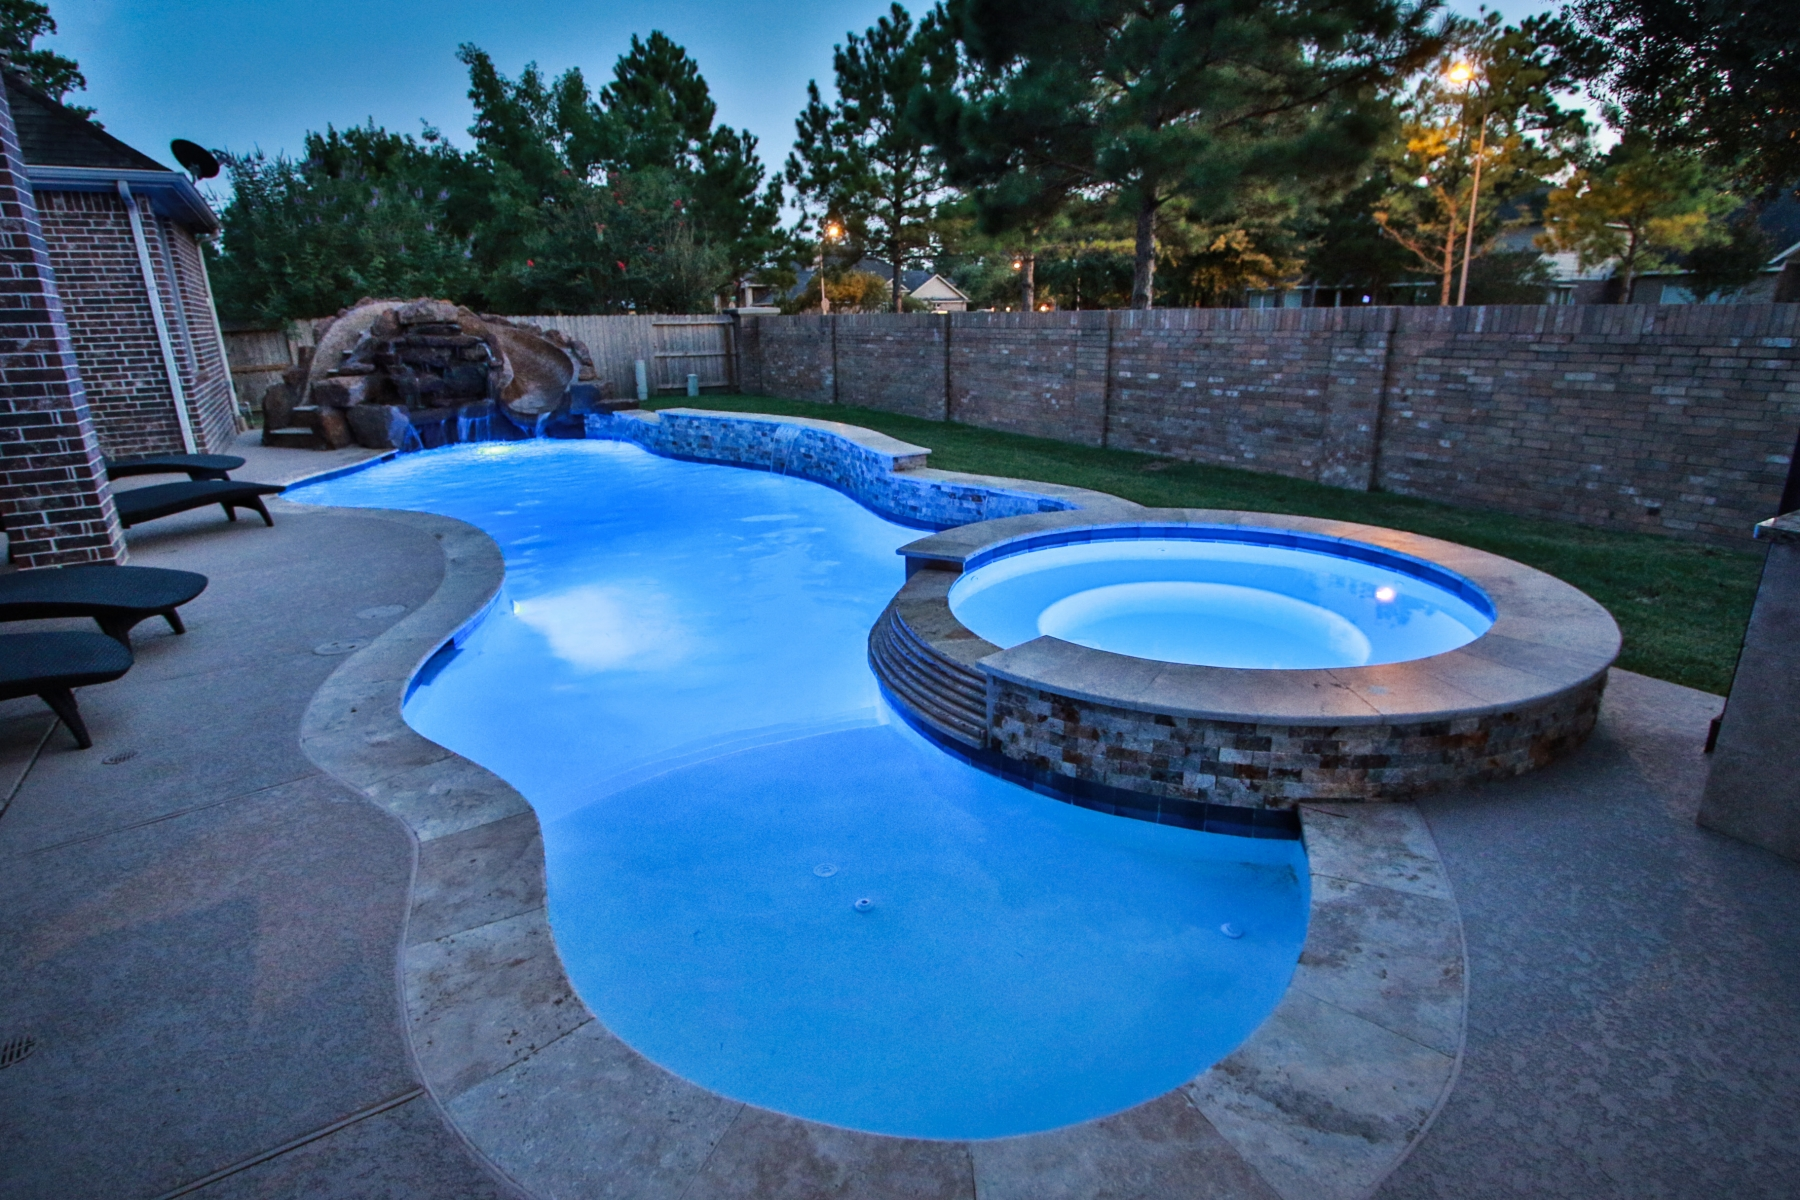 Freeform Pool at Night withTanning Ledge, Raised Spa and Rock Water Slide